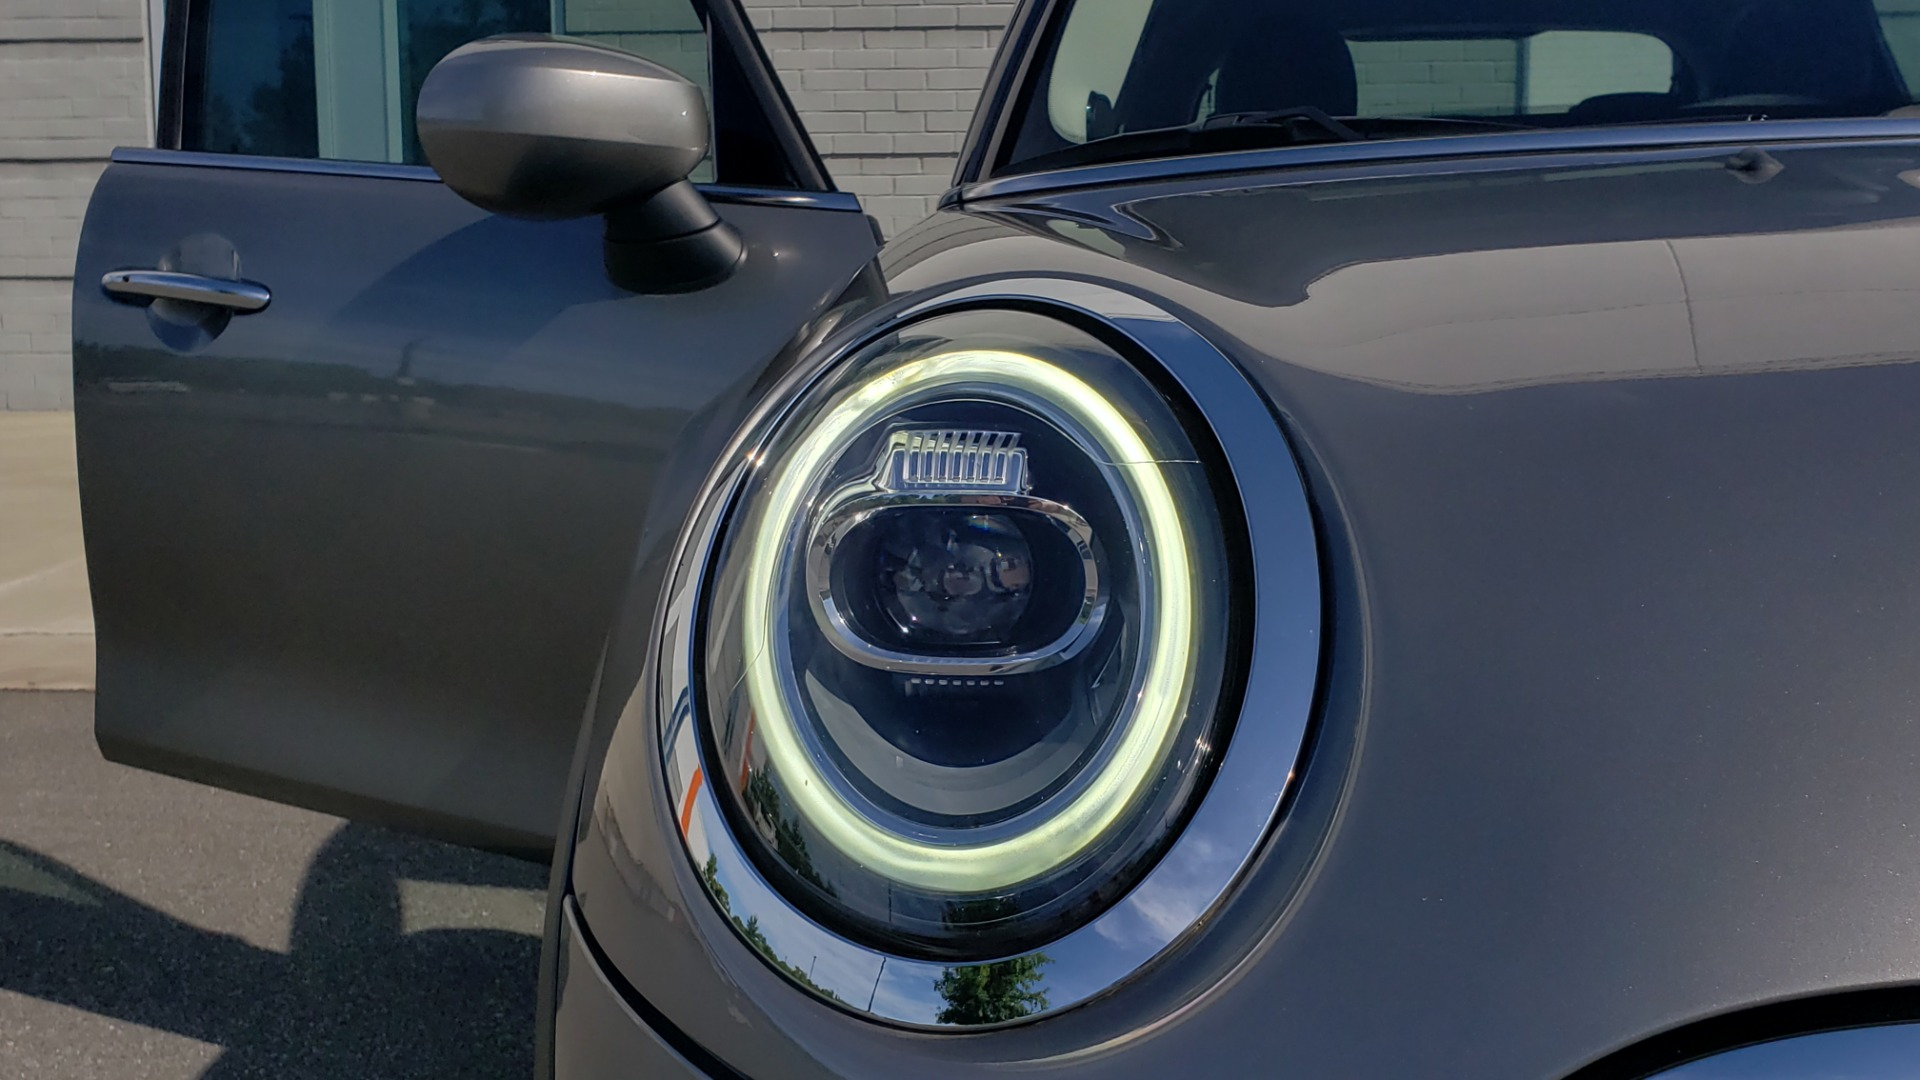 Used 2020 MINI HARDTOP 4 DOOR COOPER S / NAV / SUNROOF / AUTO / H/K SND / REARVIEW for sale $28,495 at Formula Imports in Charlotte NC 28227 26